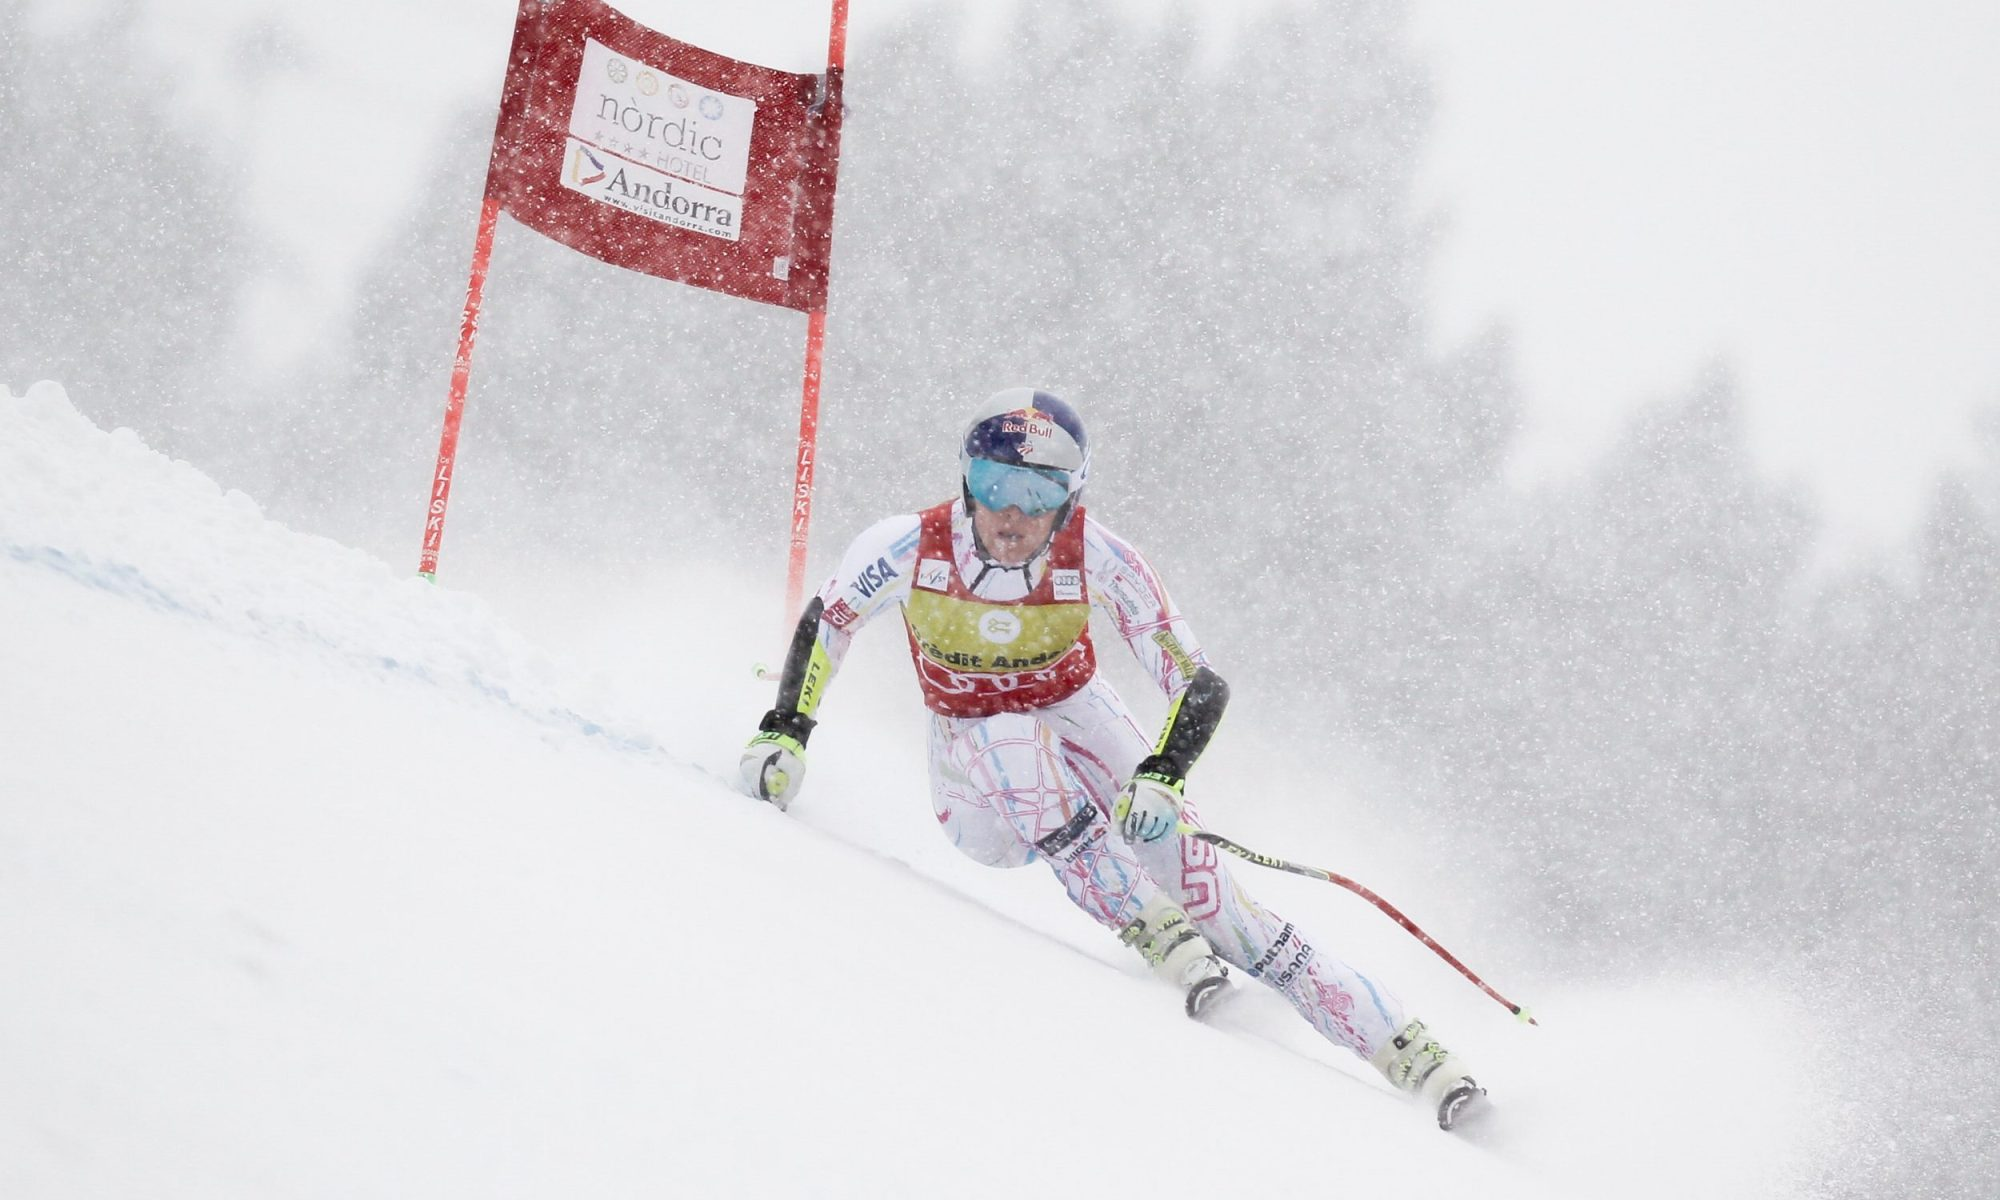 SOLDEU, ANDORRA - FEBRUARY 27: Lindsey Vonn of USA competes during the Audi FIS Alpine Ski World Cup WomenÕs Super-G on February 27, 2016 in Soldeu, Andorra. (Photo by Alexis Boichard/Agence Zoom)